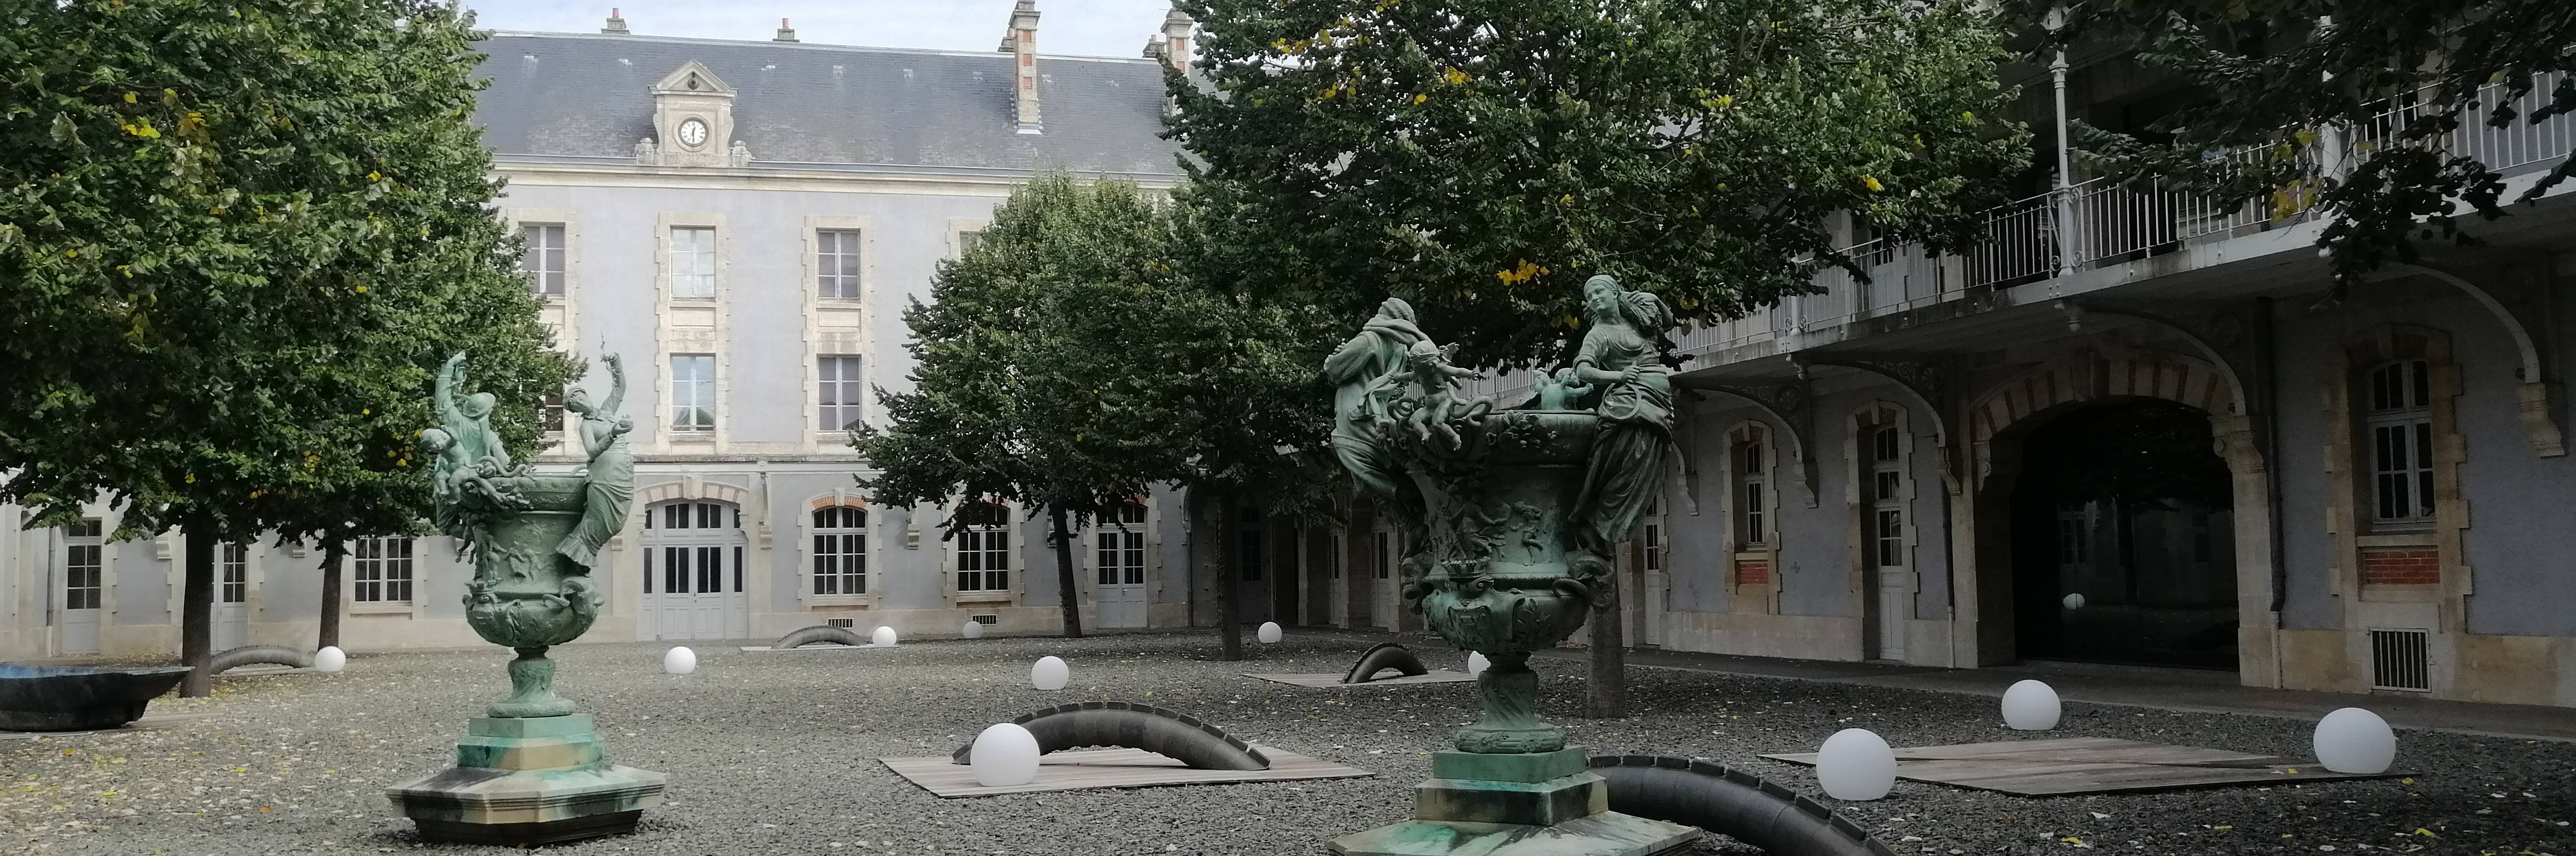 Let's discover the Bernard d'Agesci Museum in Niort